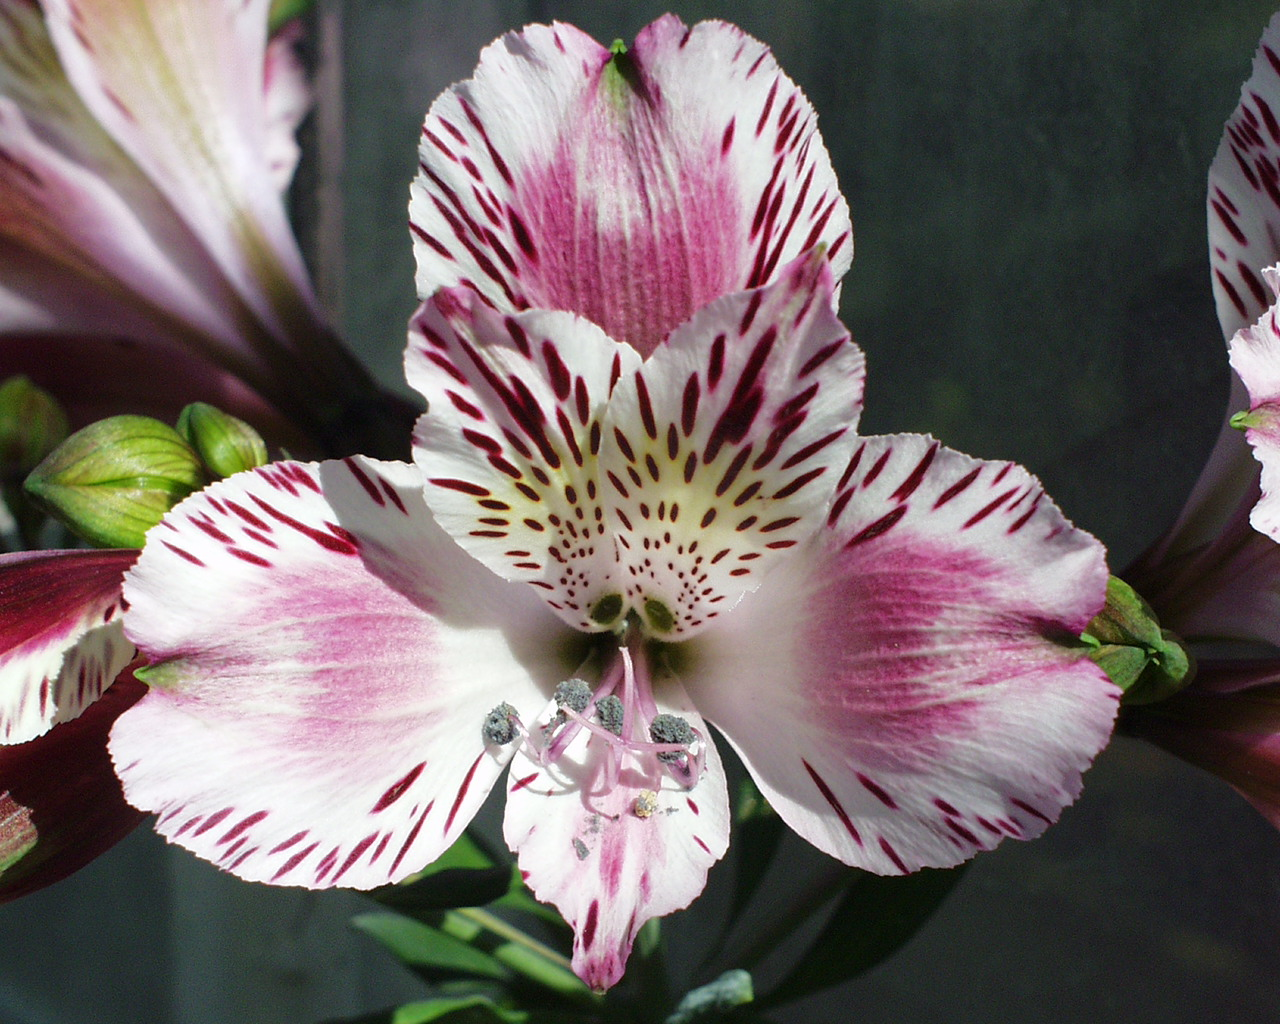 Alstroemeria the lily of the incas kinds of ornamental plants alstroemeria the lily of the incas izmirmasajfo